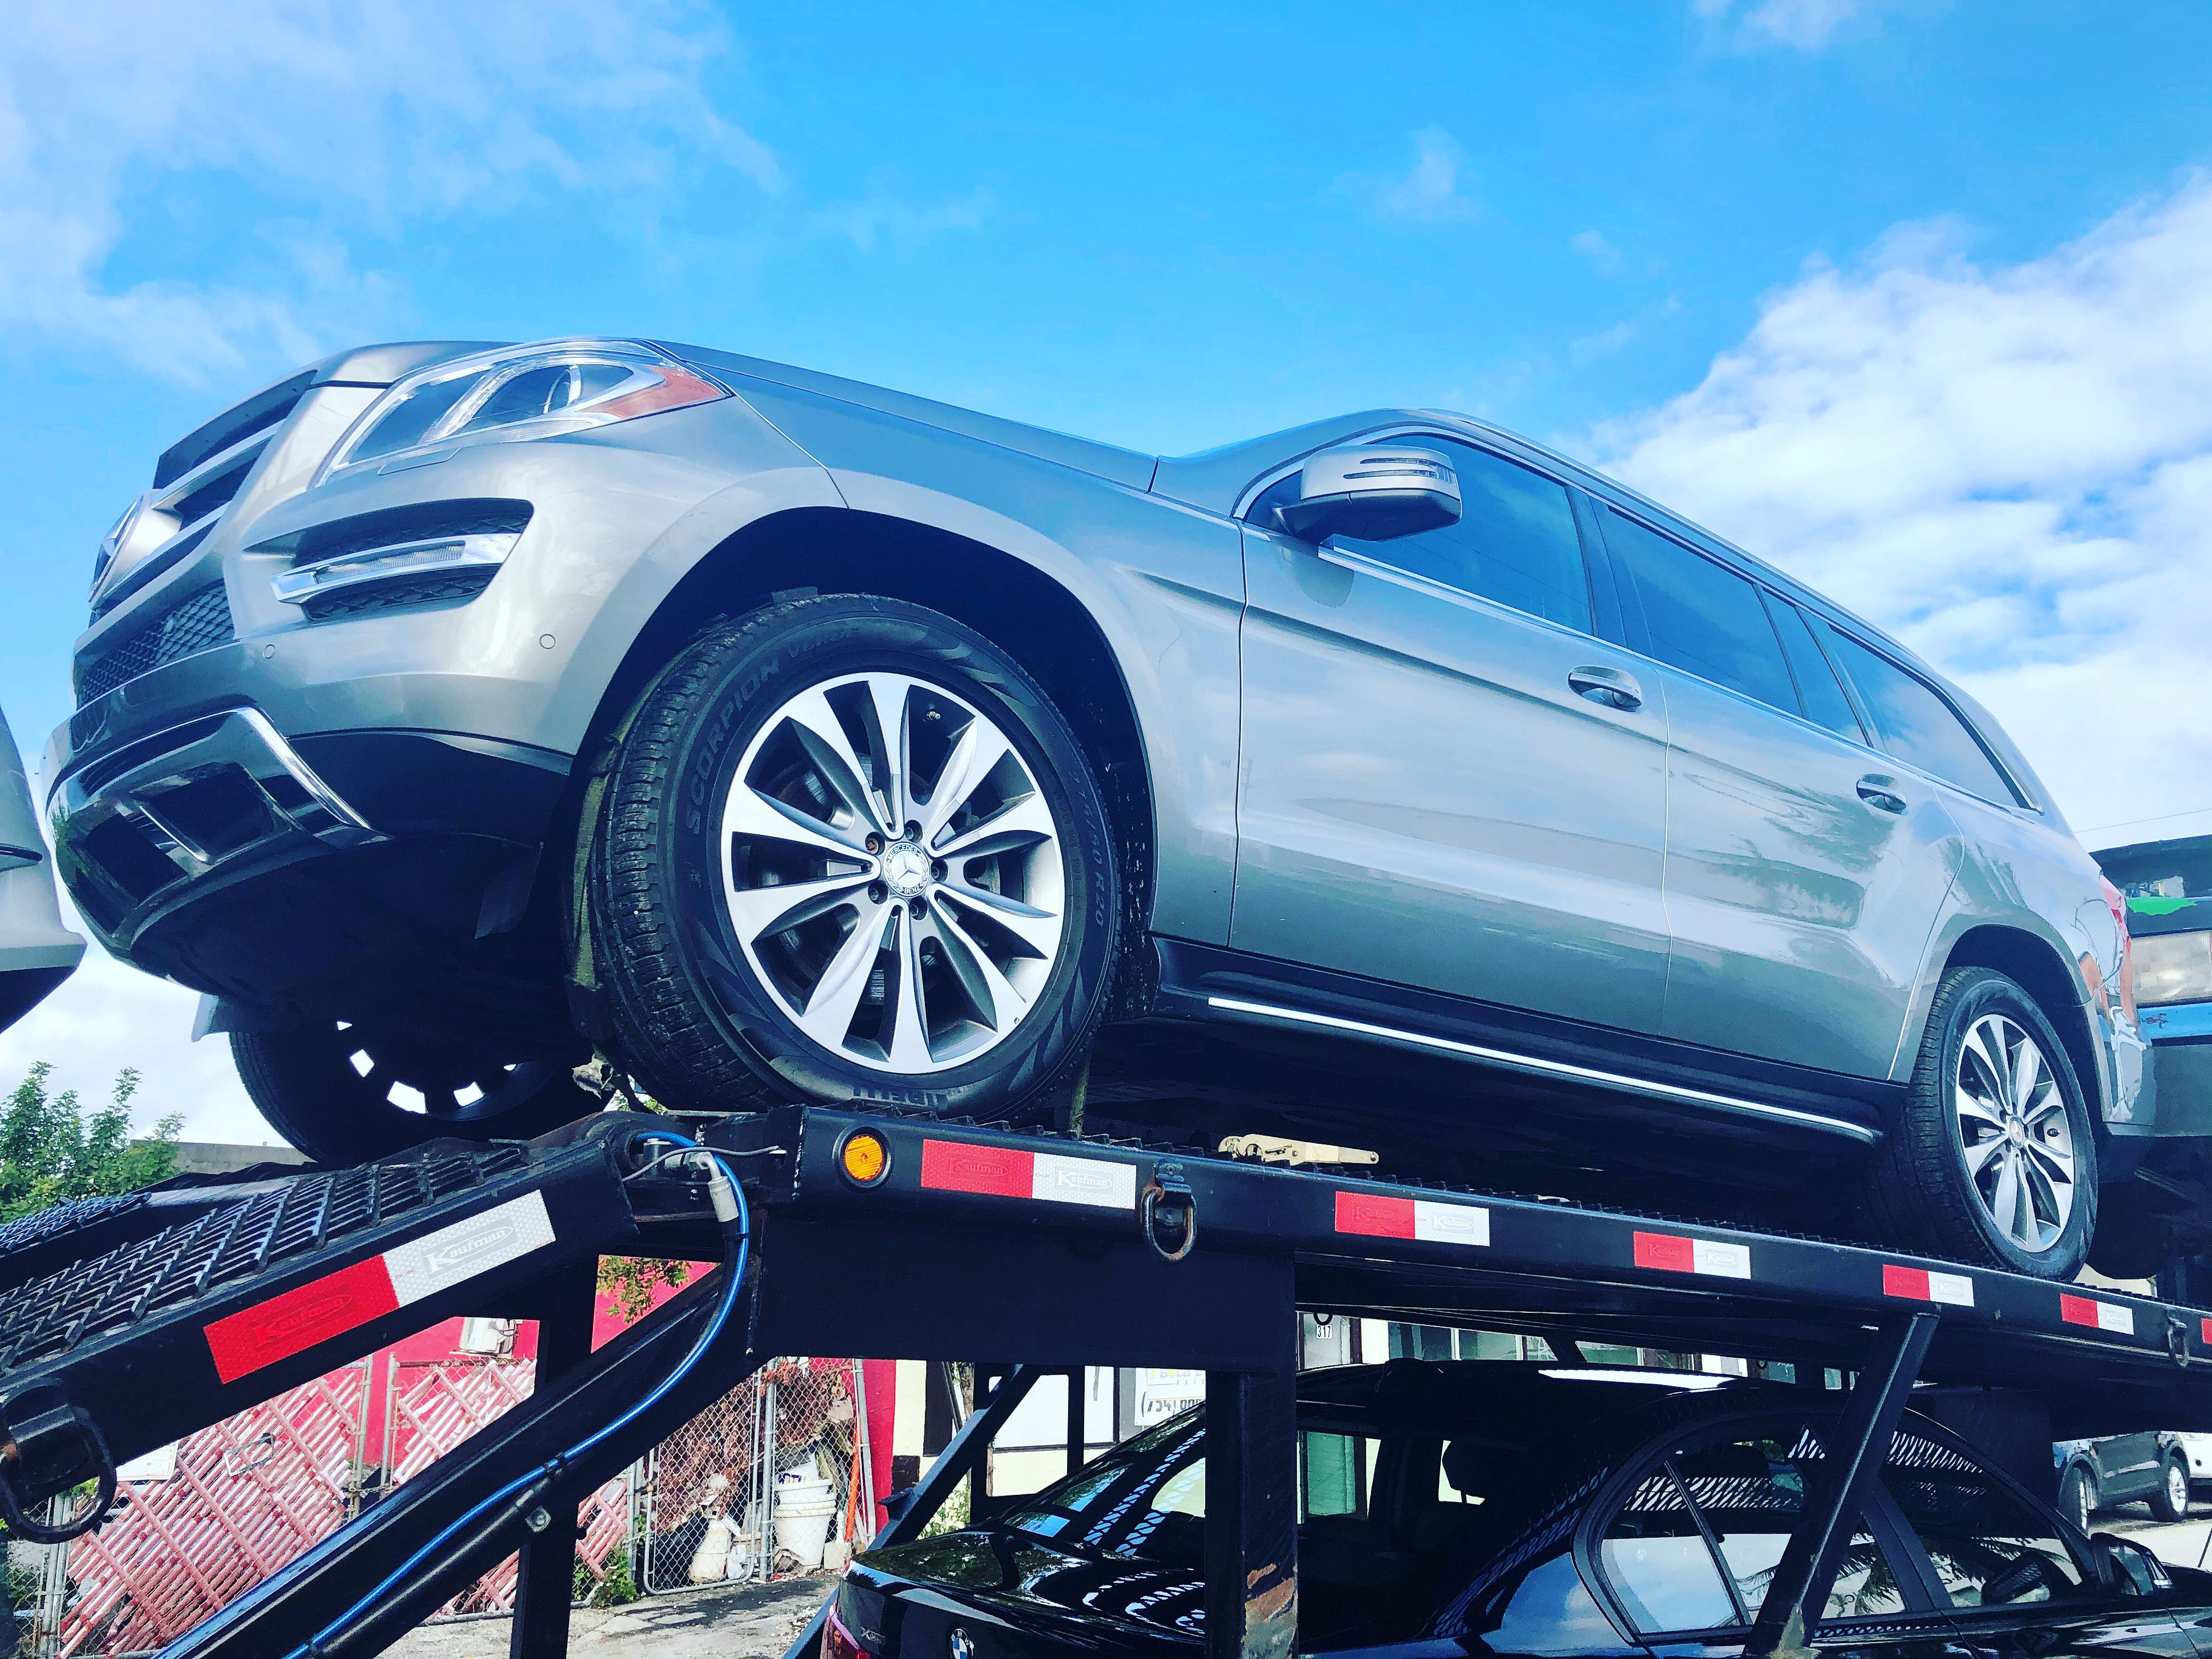 This awesome 2015 MercedesBenz GL450 is on its way to a